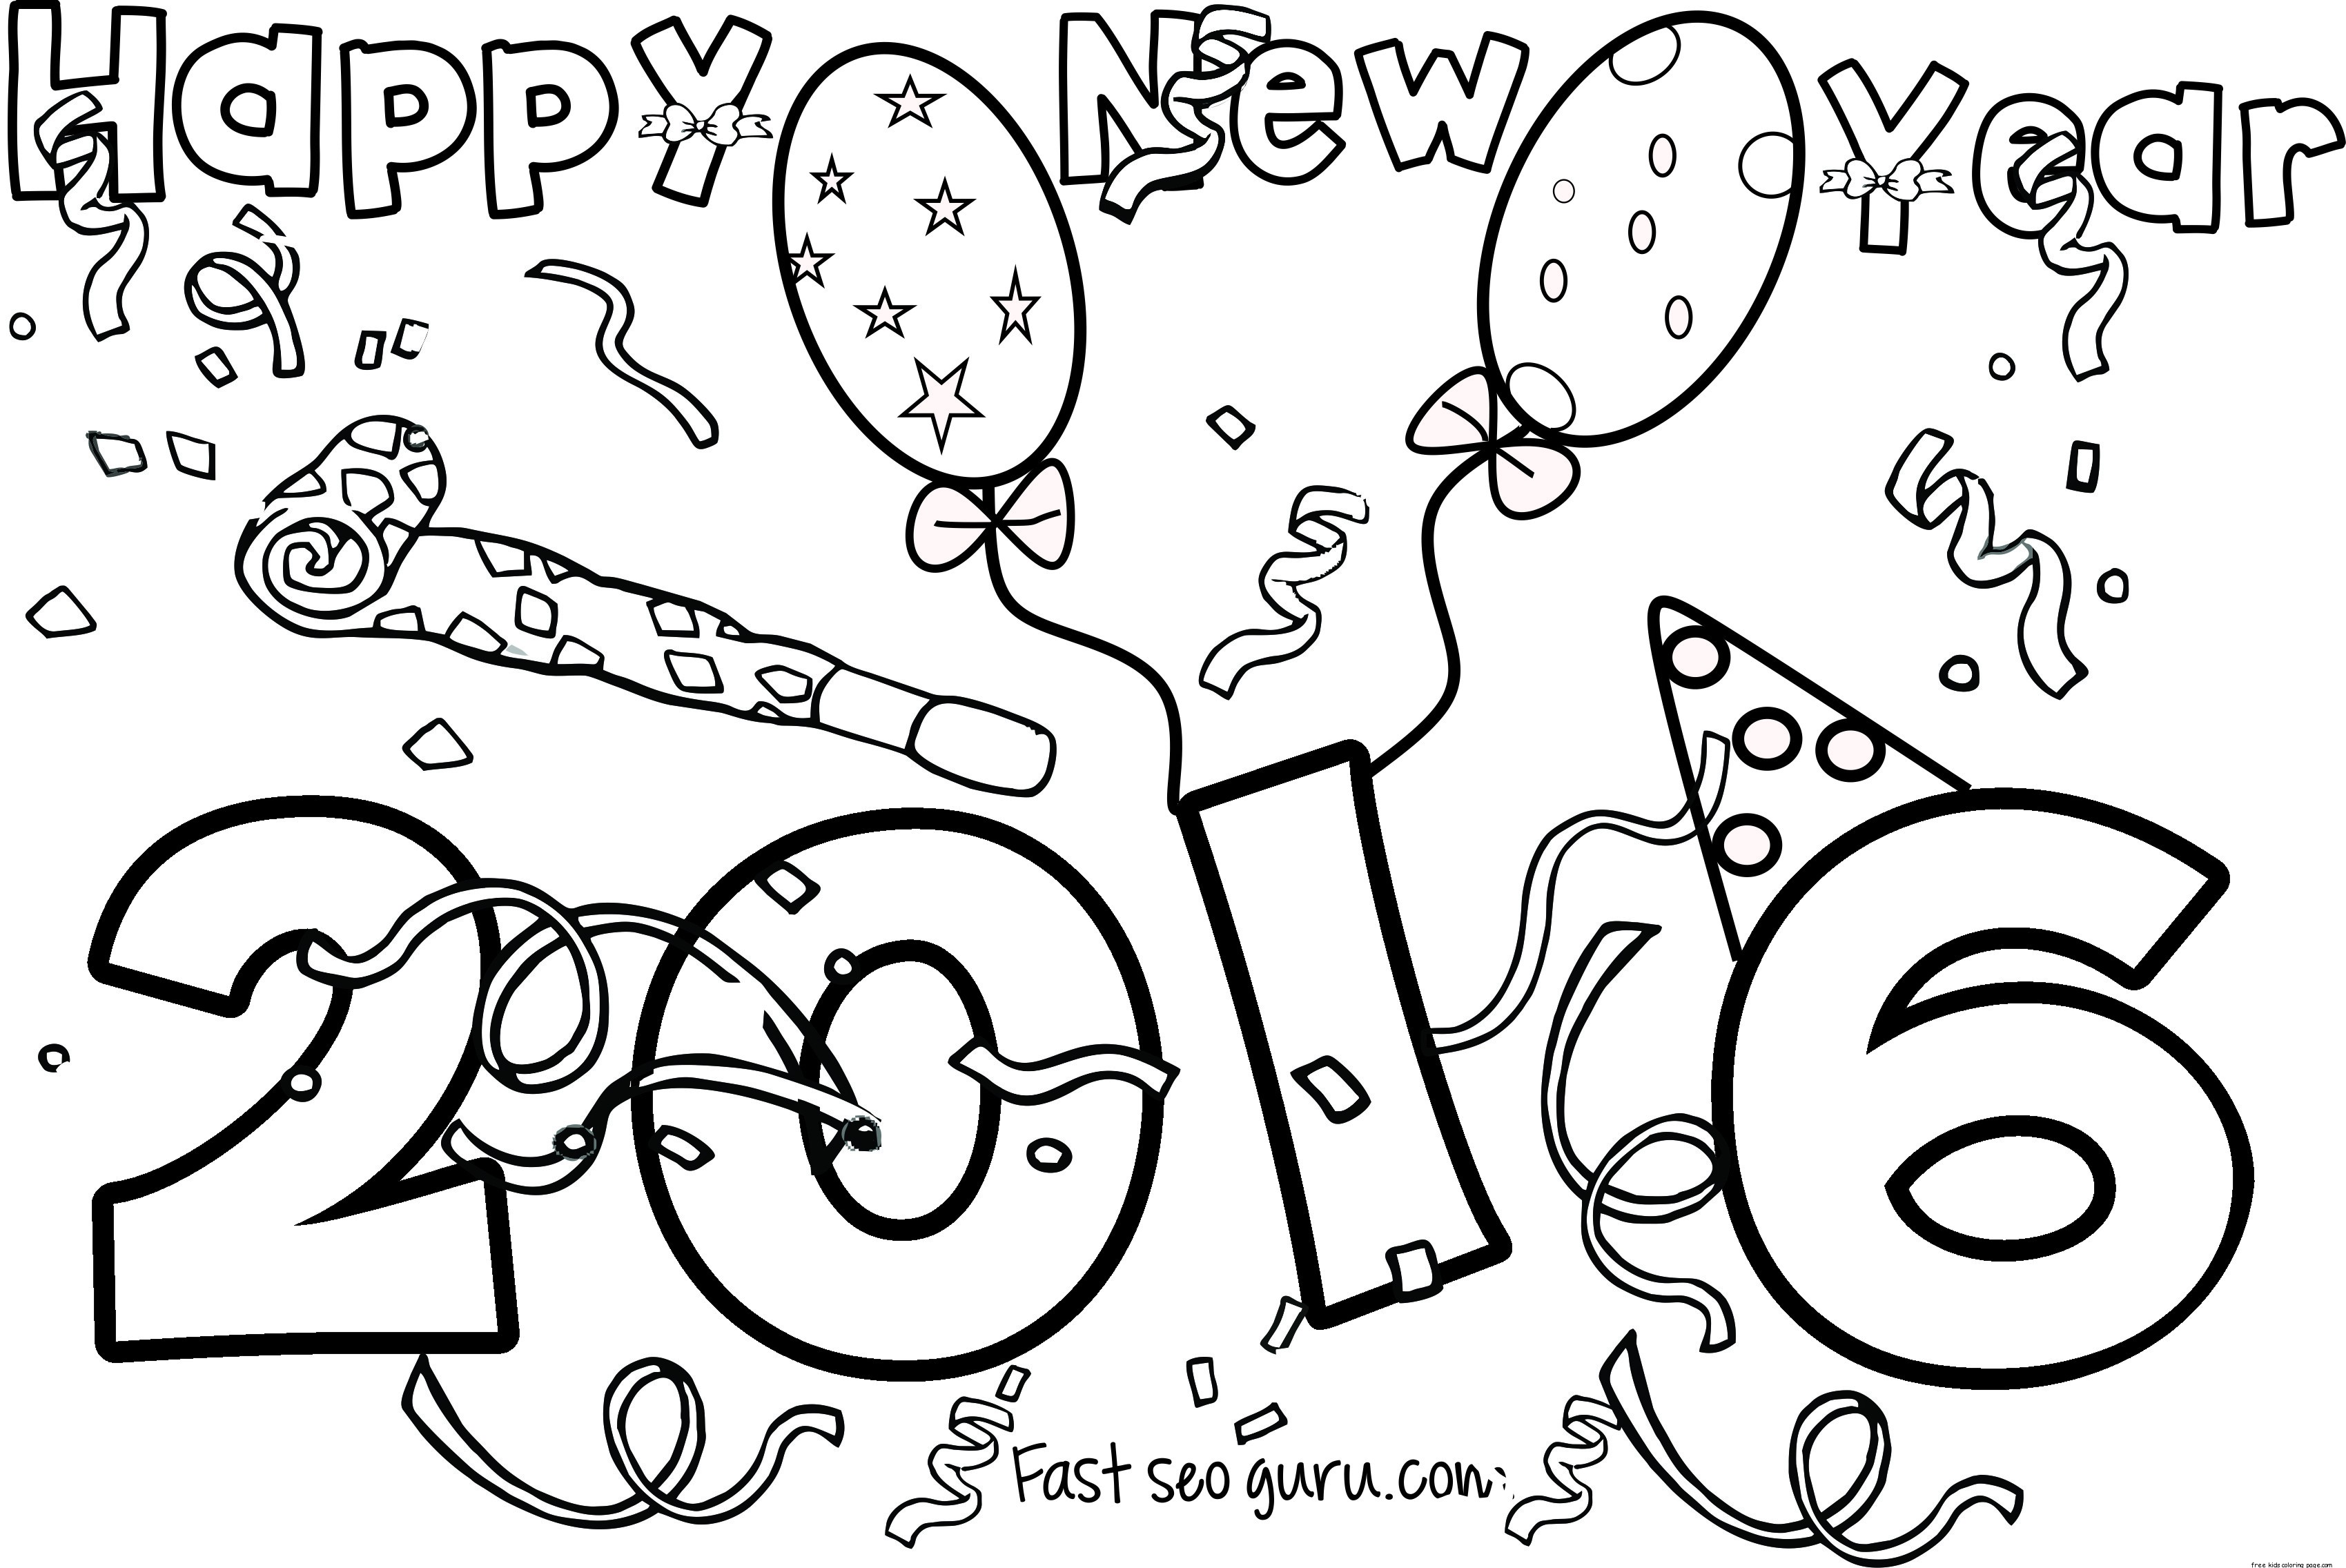 New Year Celebration Drawing At Getdrawings